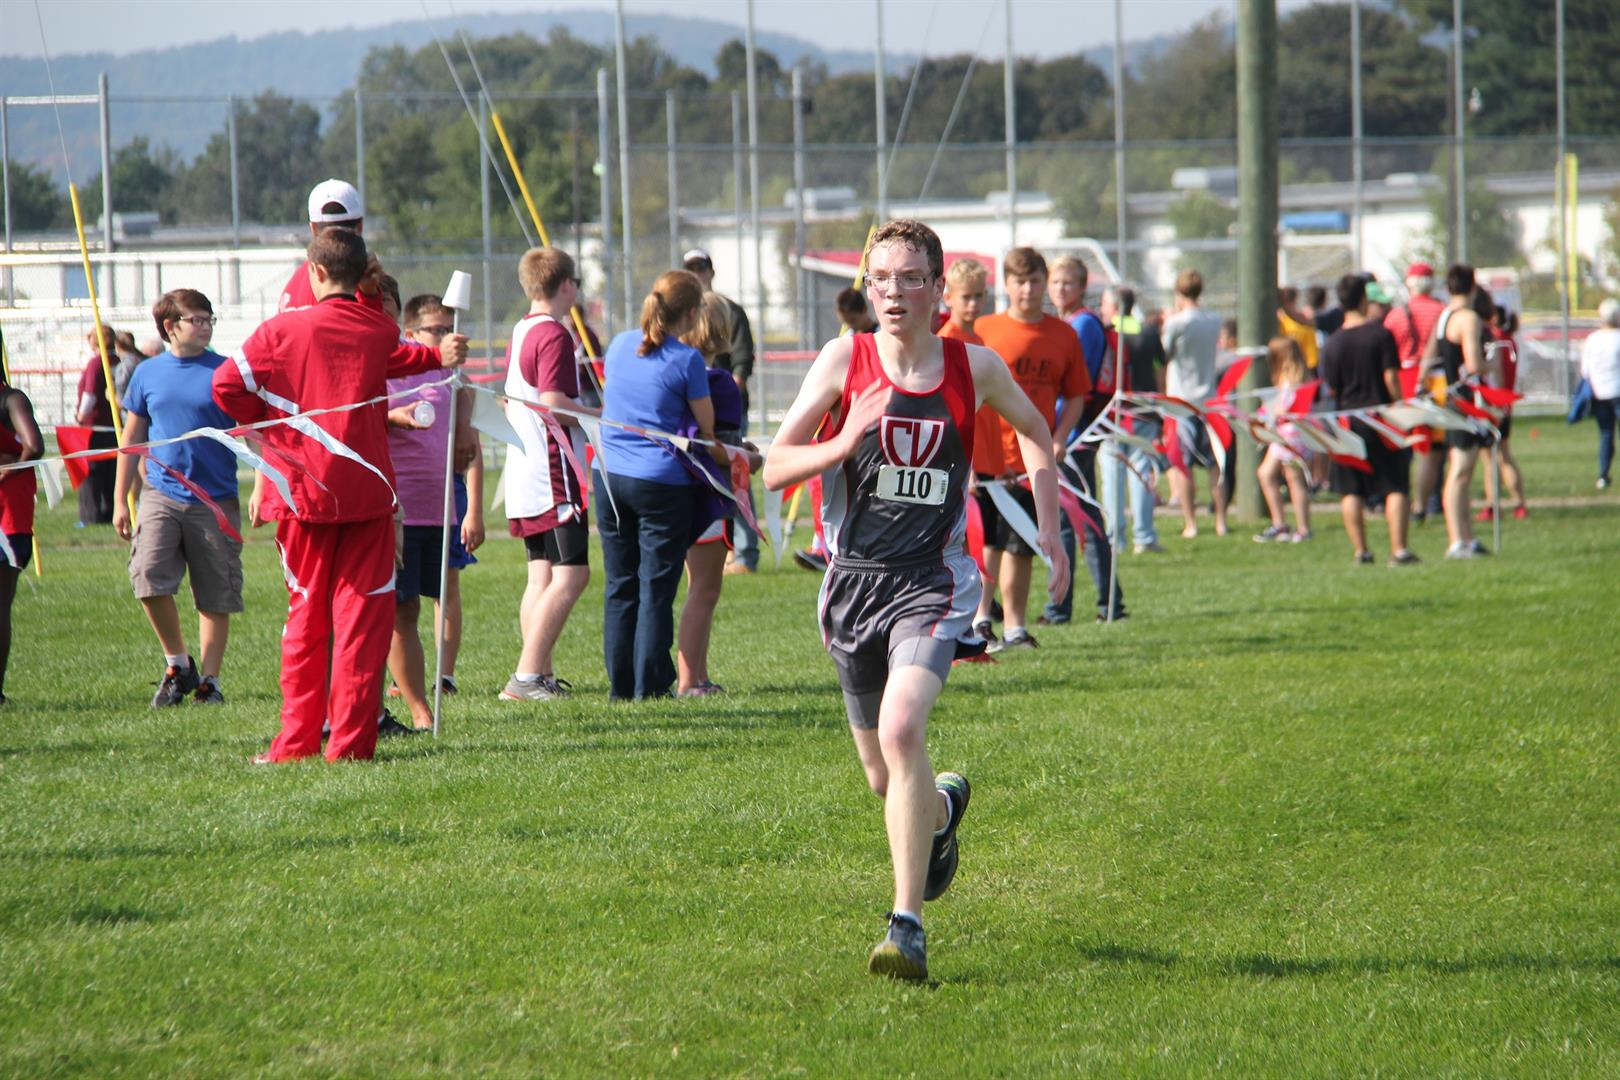 male student running at cross country meet